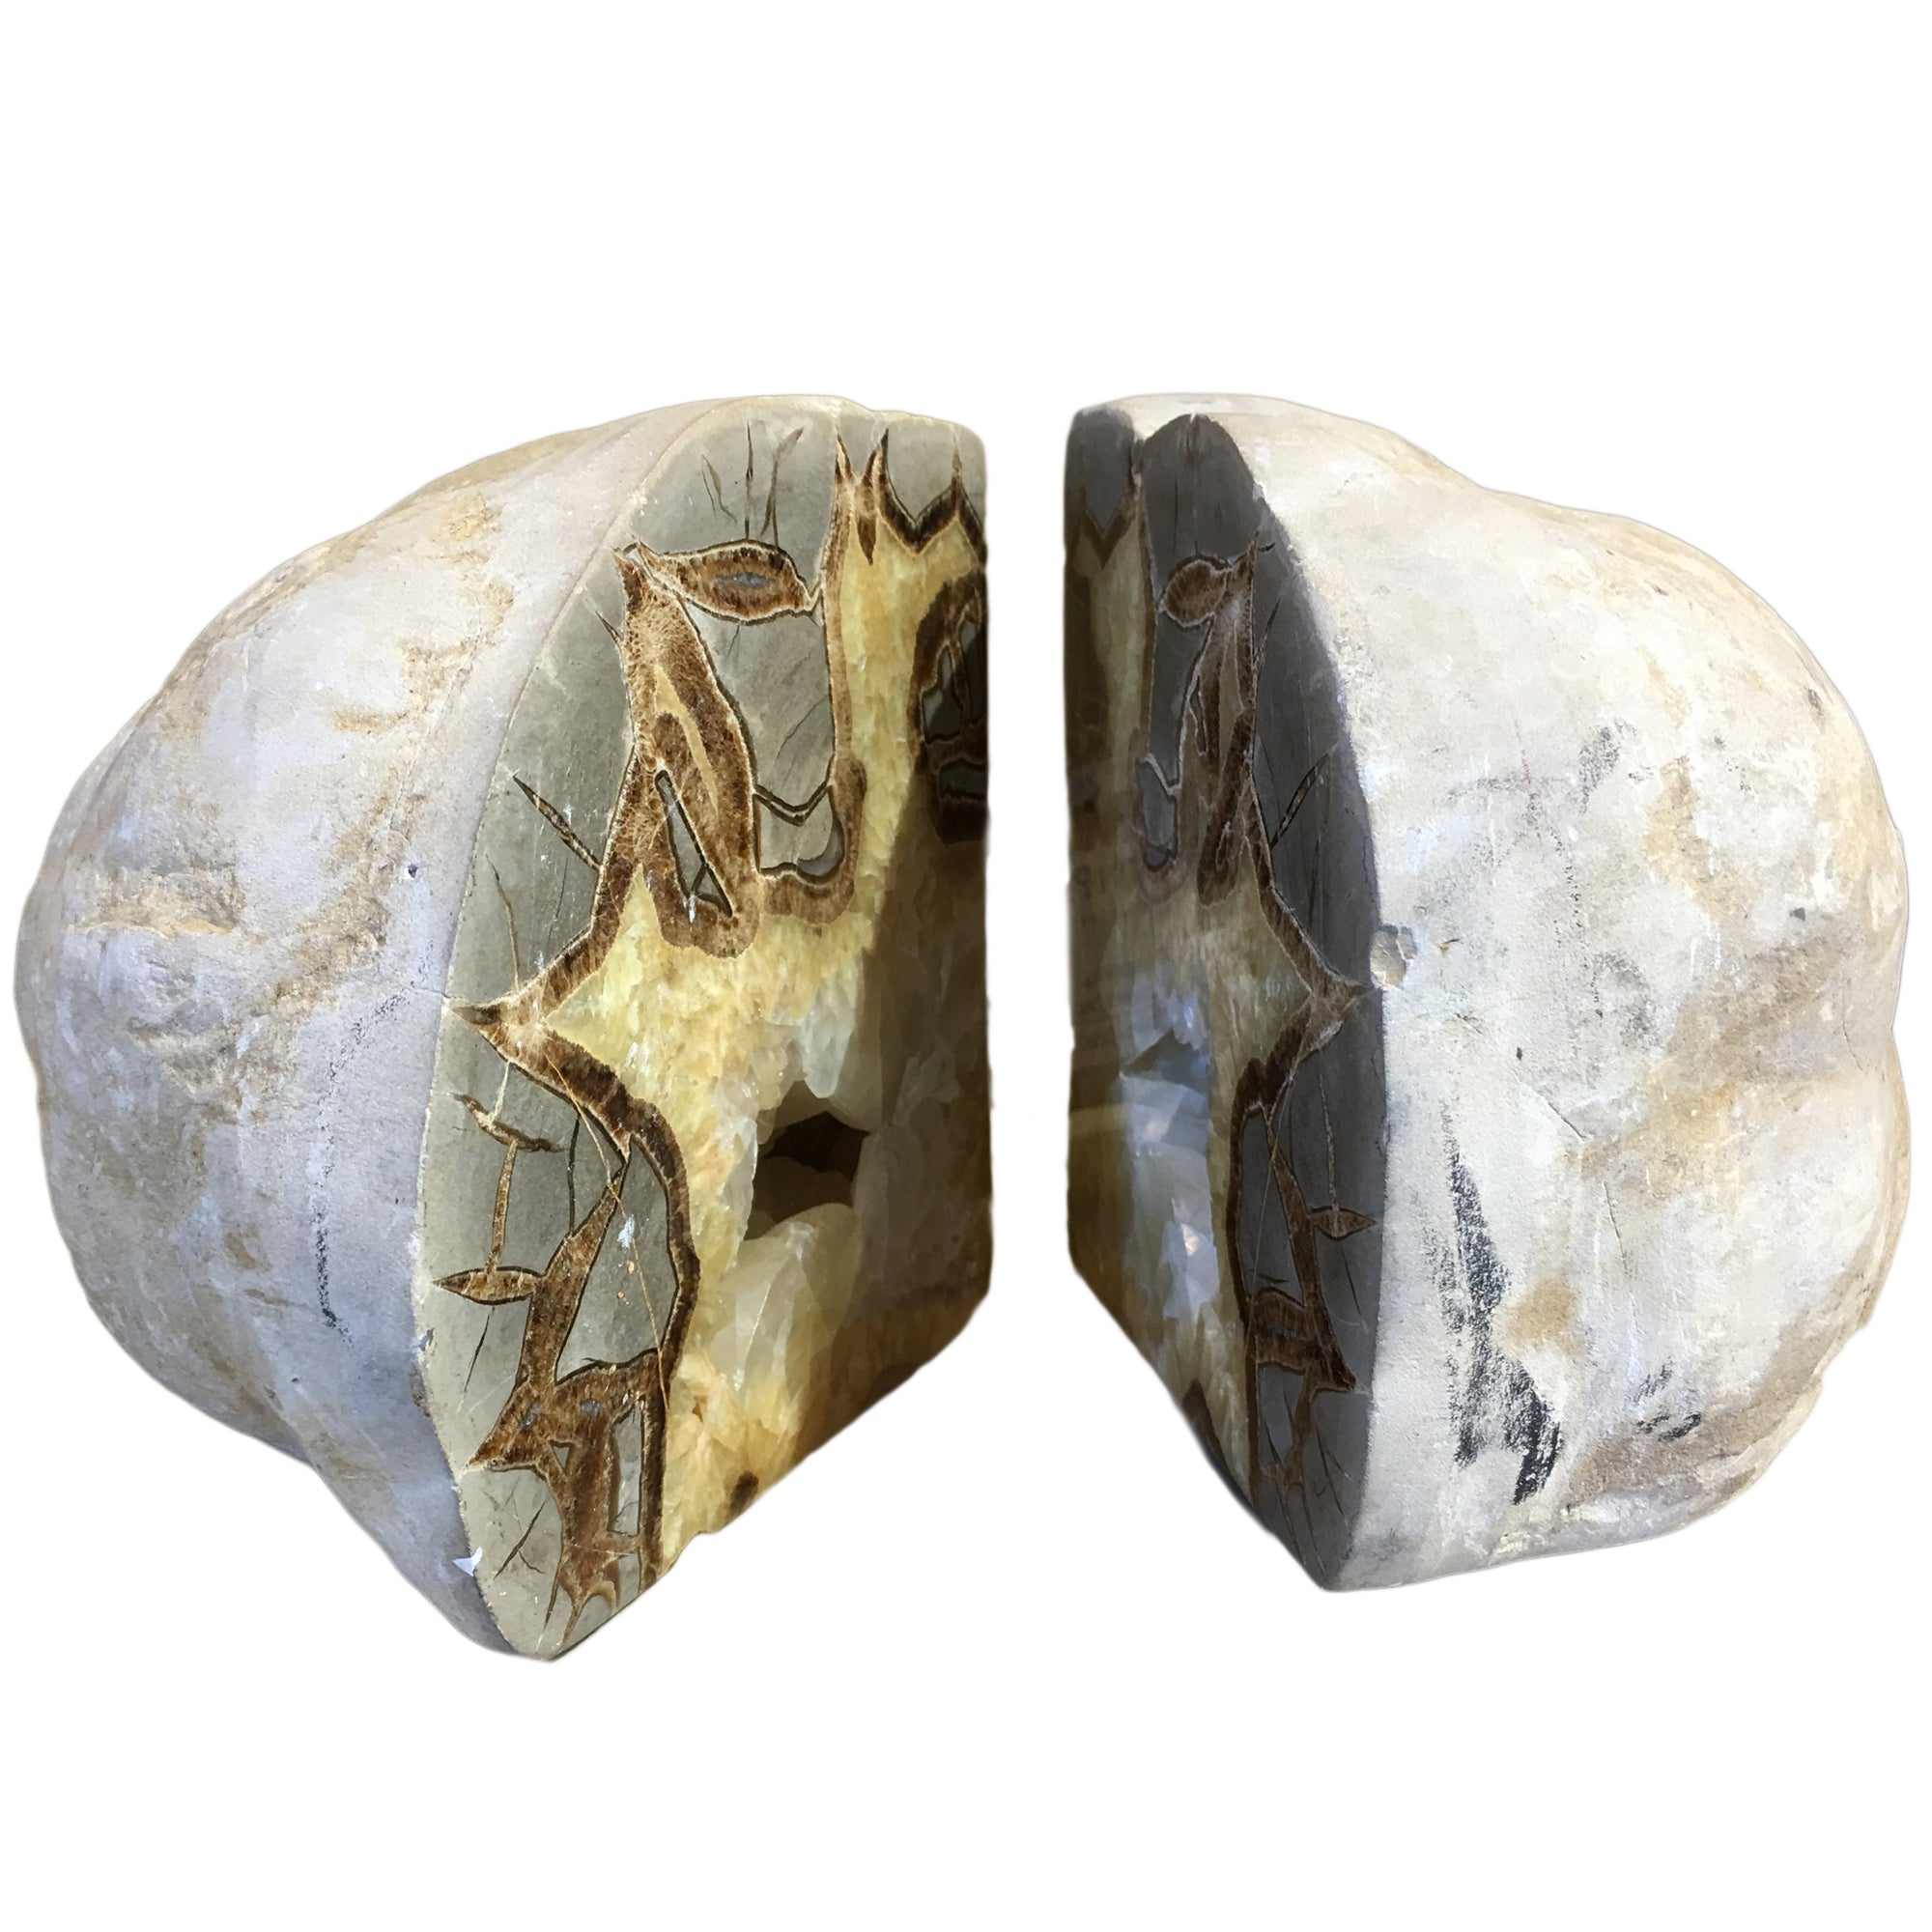 Septarian Nodule Bookends